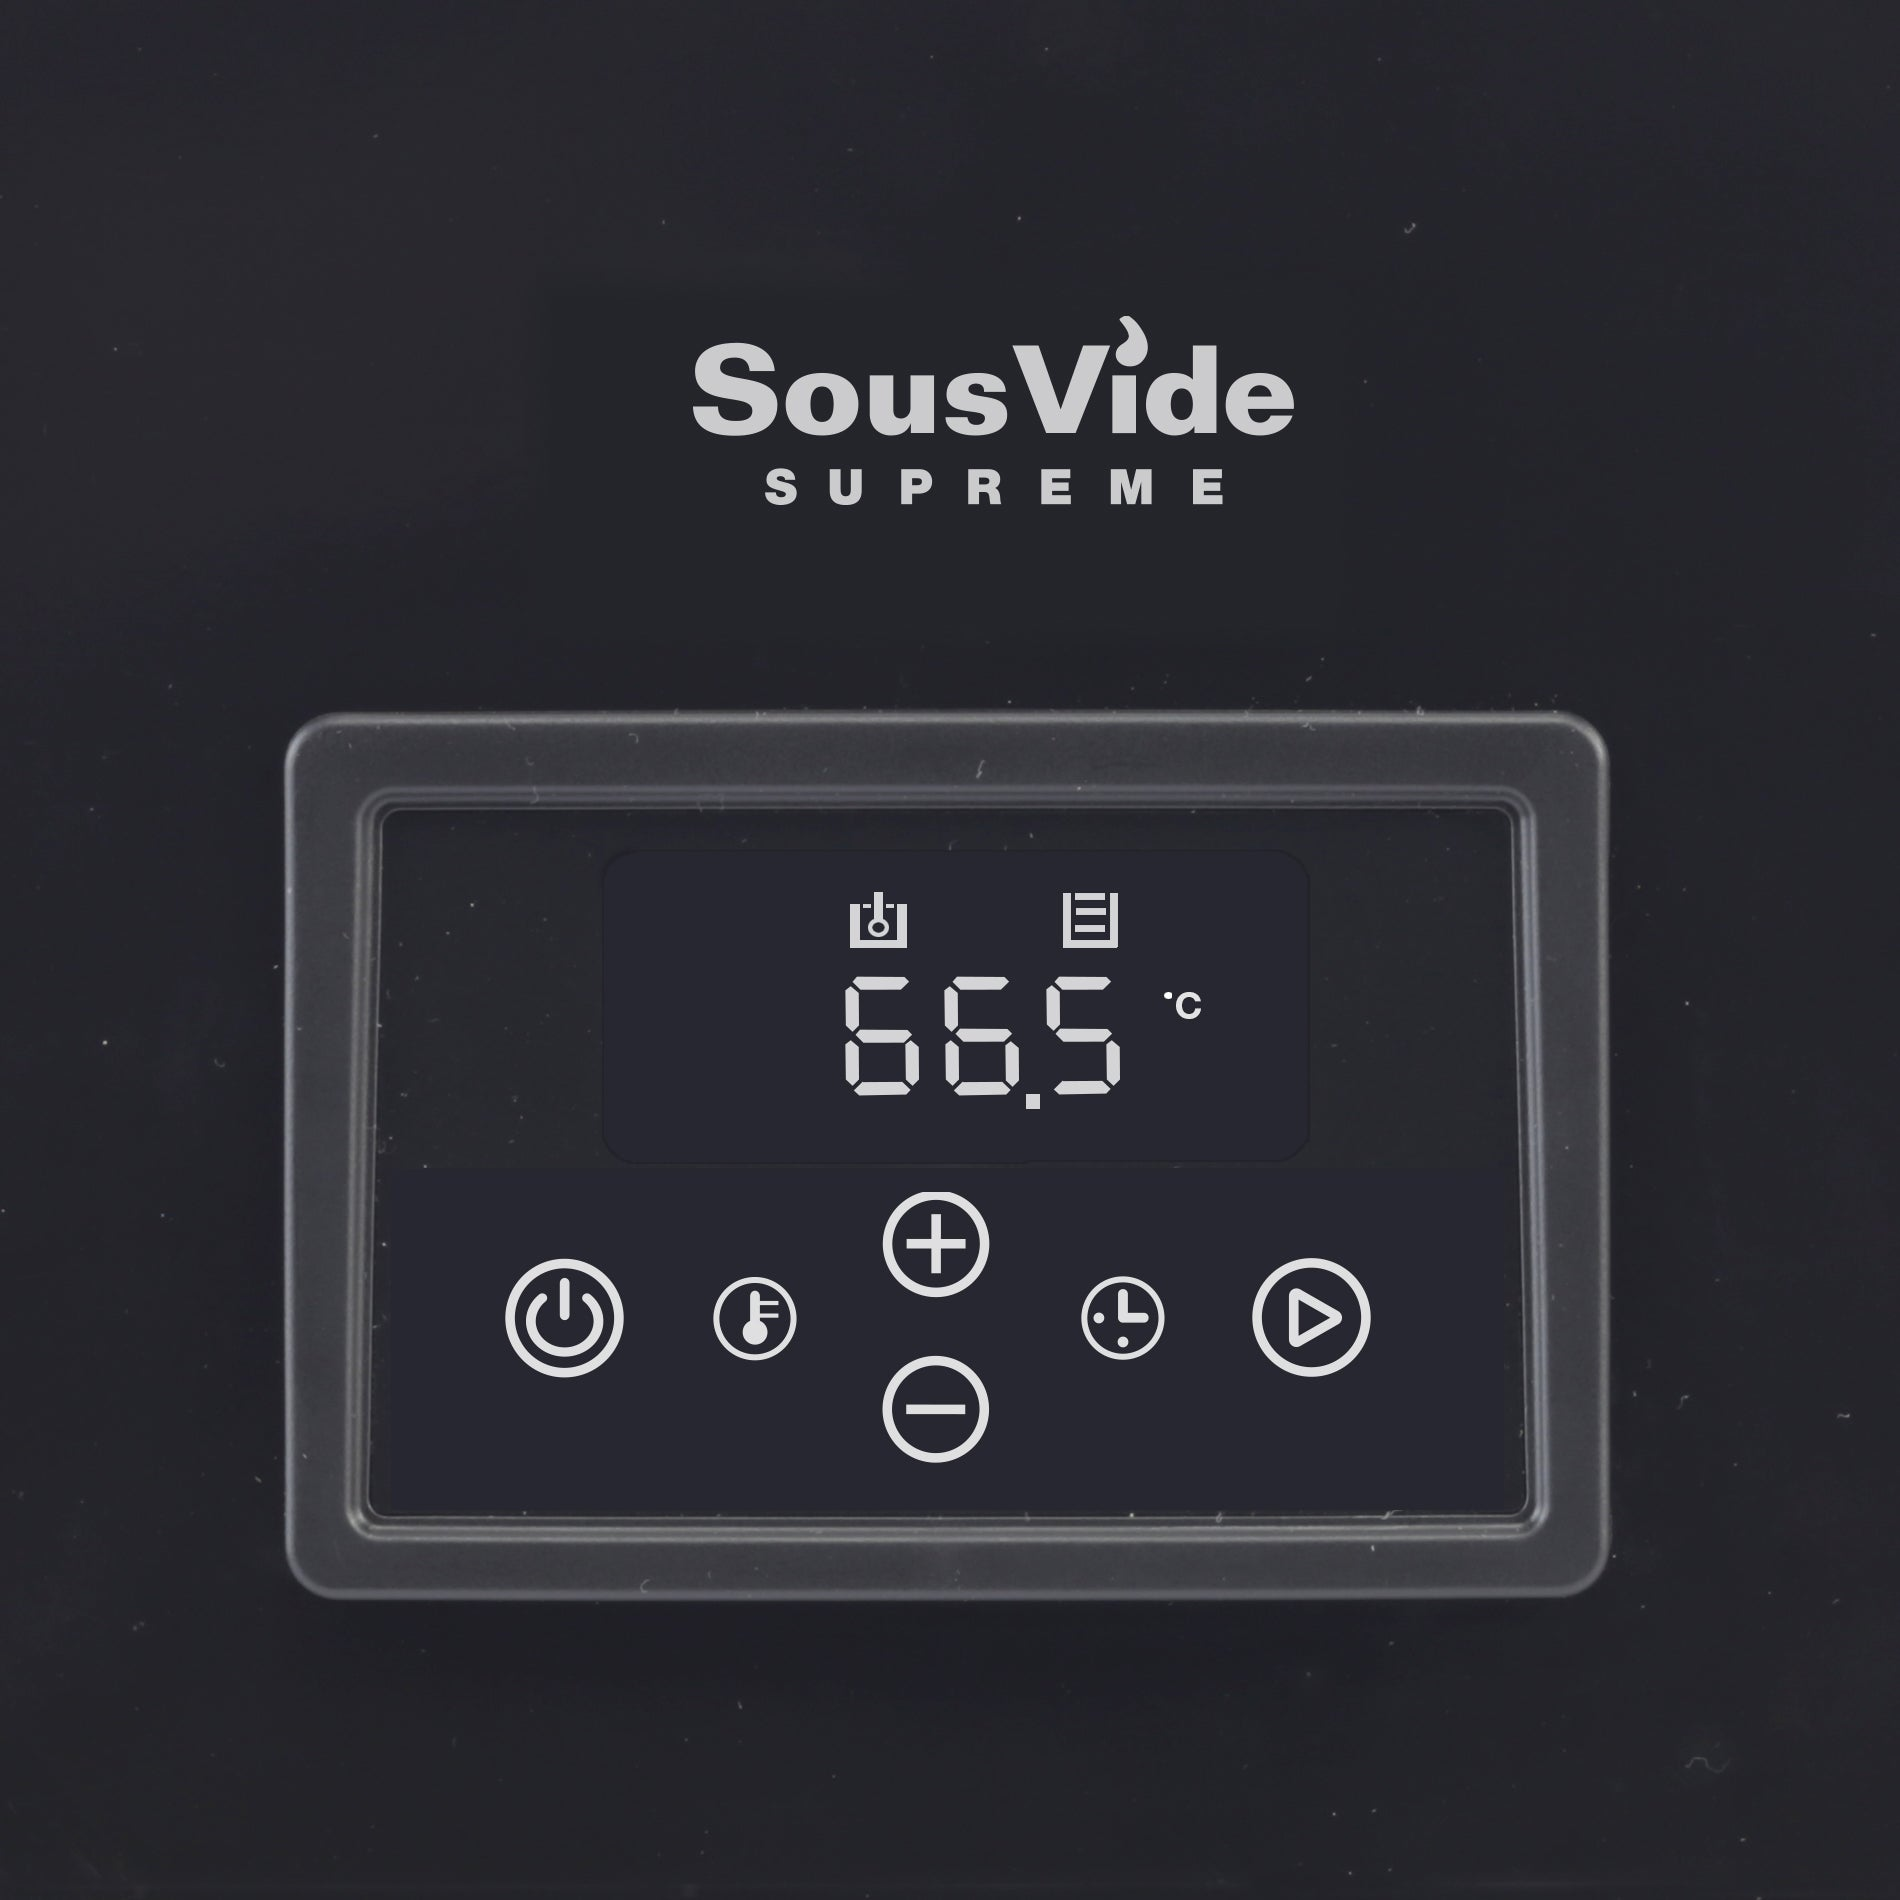 SousVide Supreme Demi Touch panel